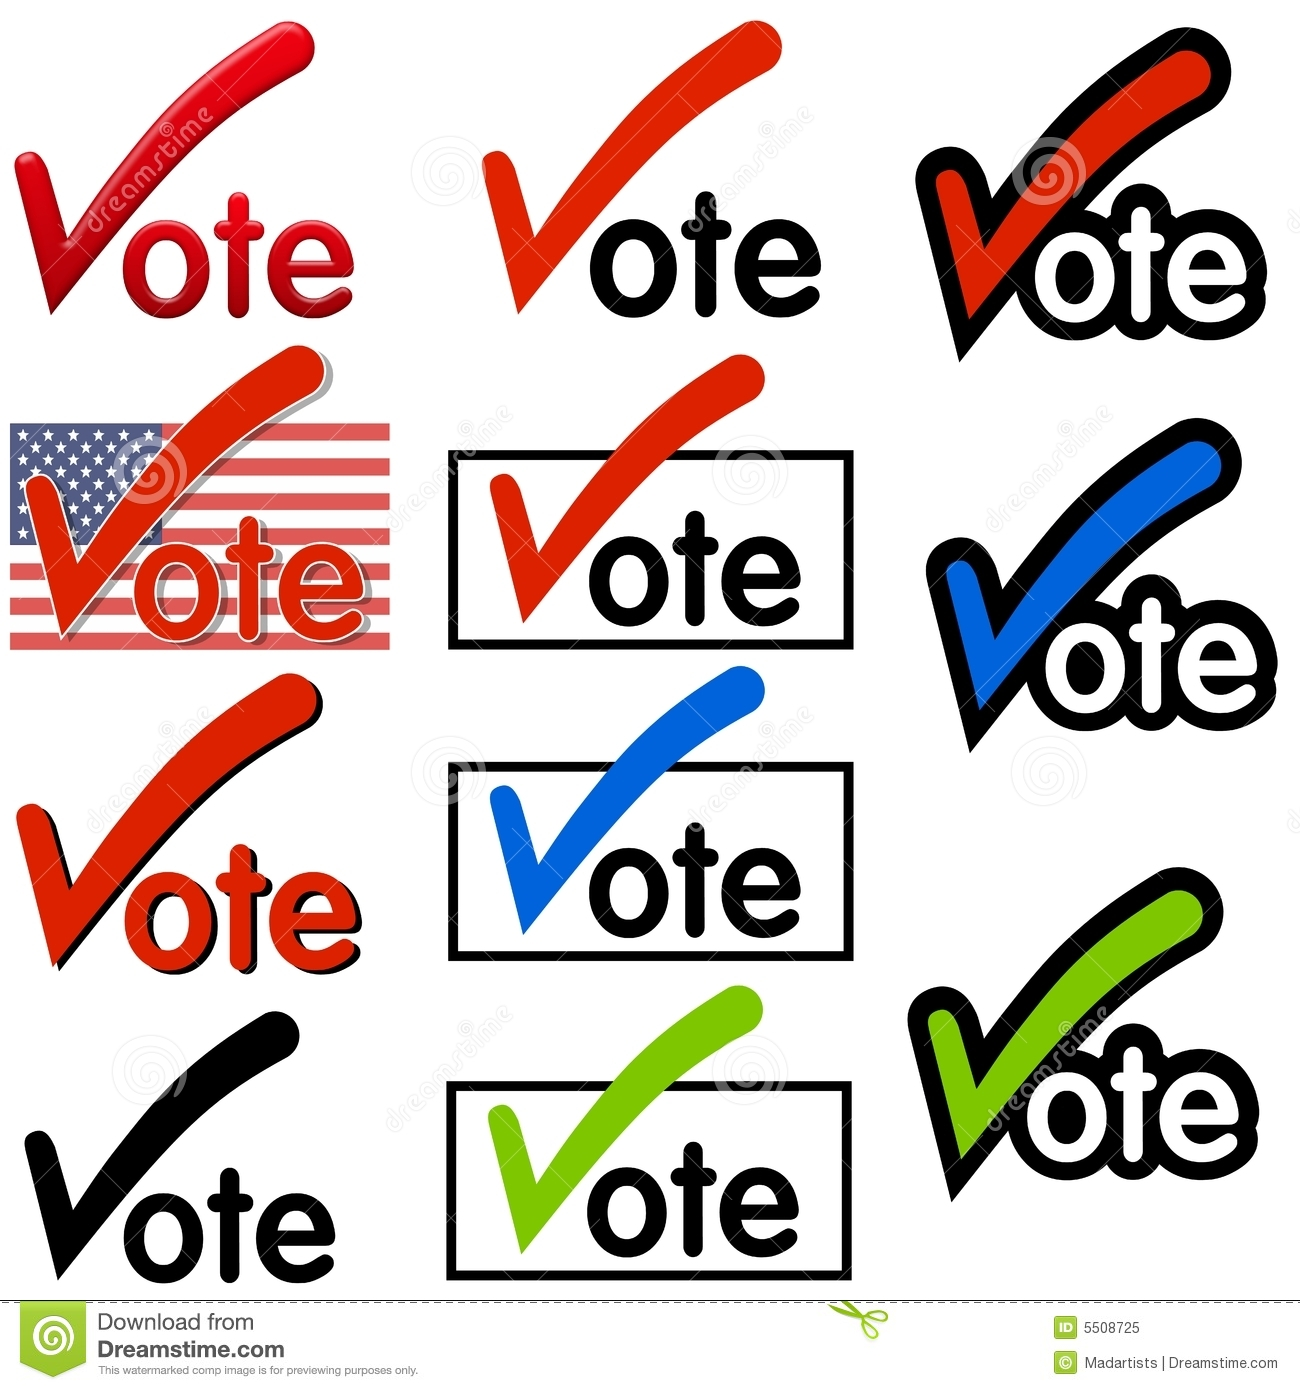 Vote Logos or Clip Art stock illustration. Illustration of images.